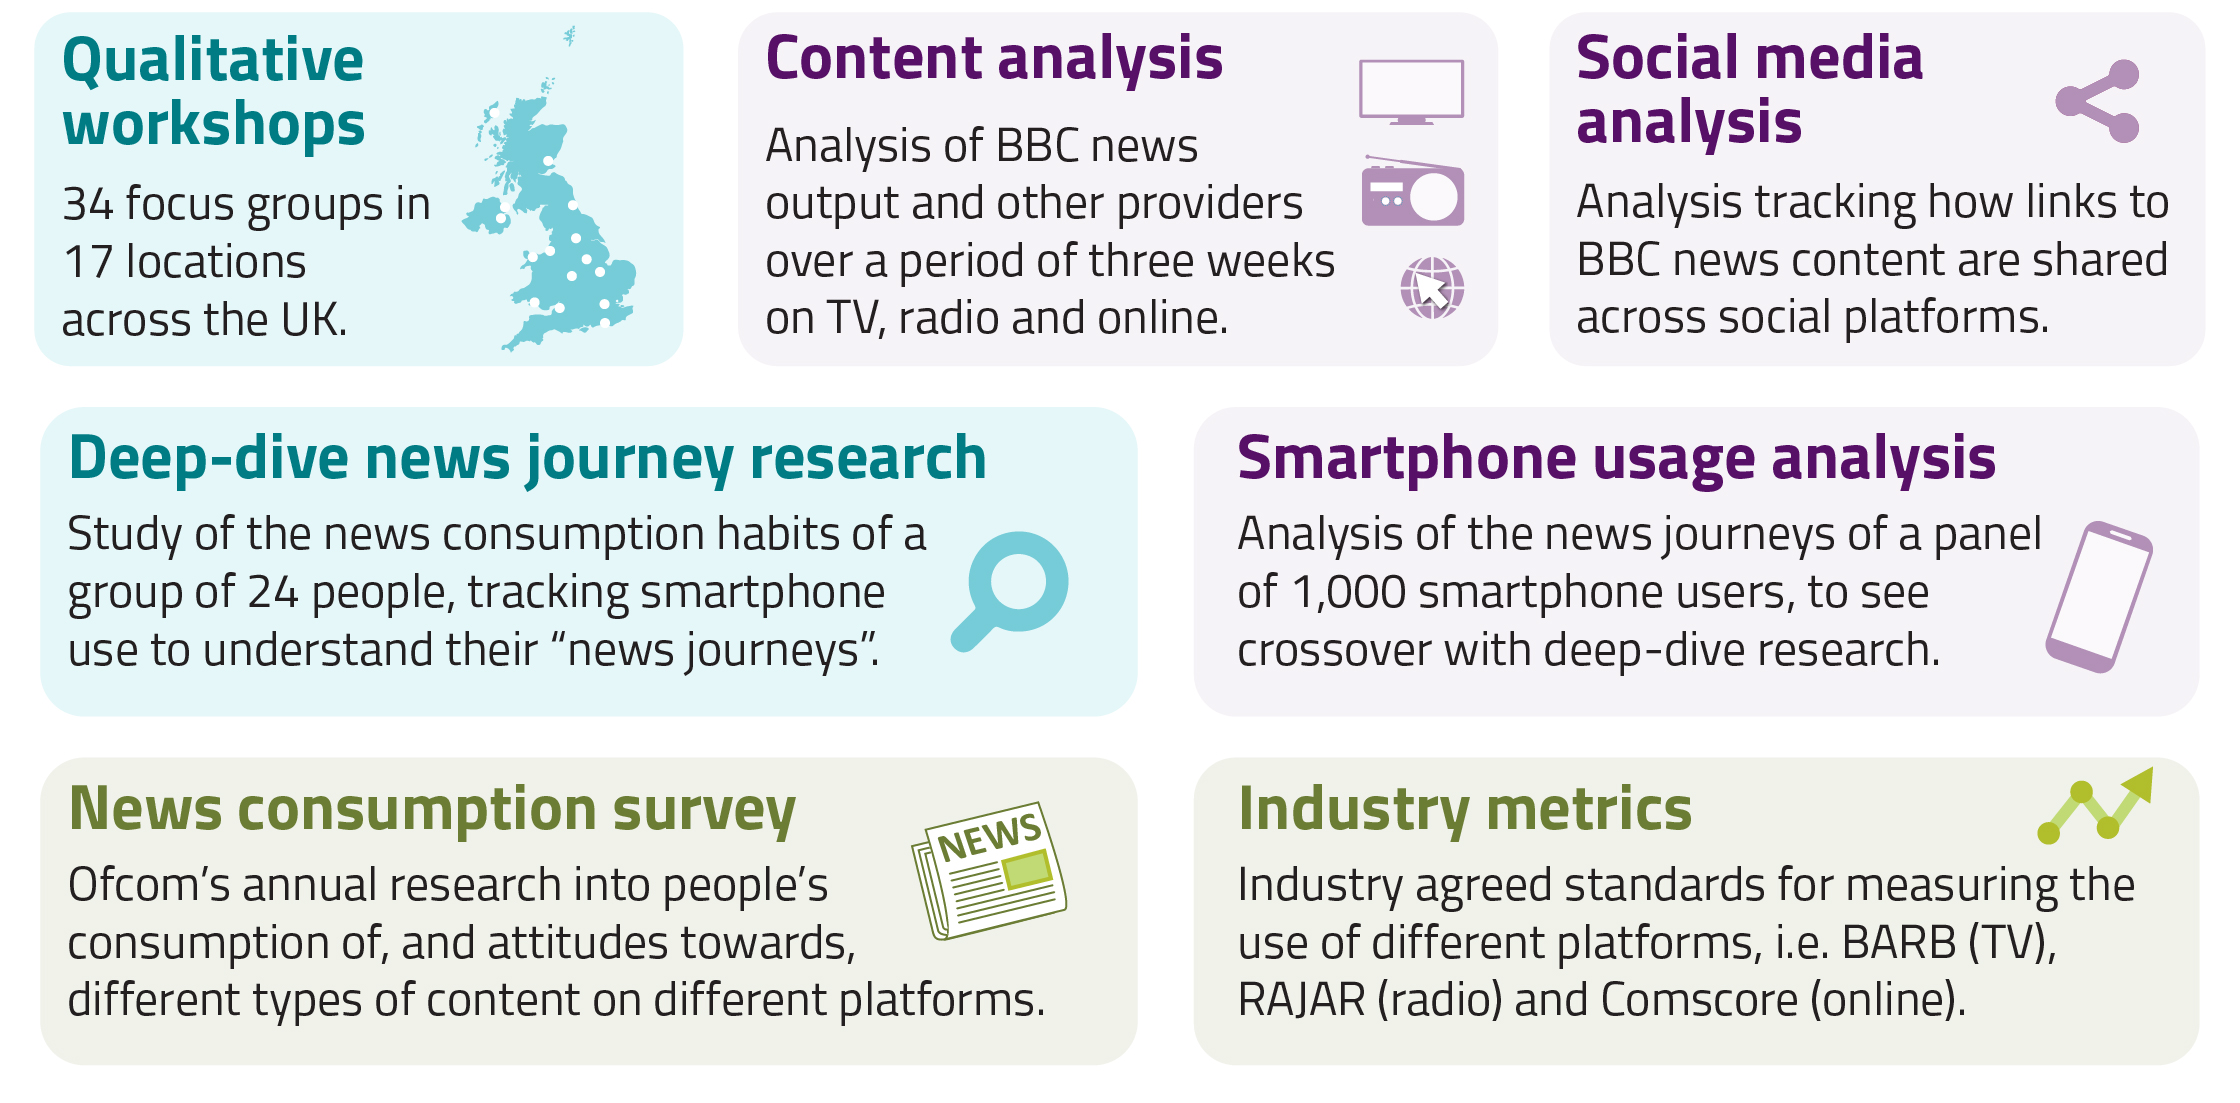 Research conducted as part of our review of BBC News. Over the course of the review we carried out qualitative workshops, content analysis, social media analysis, deep-dive news journey research and smartphone usage analysis.